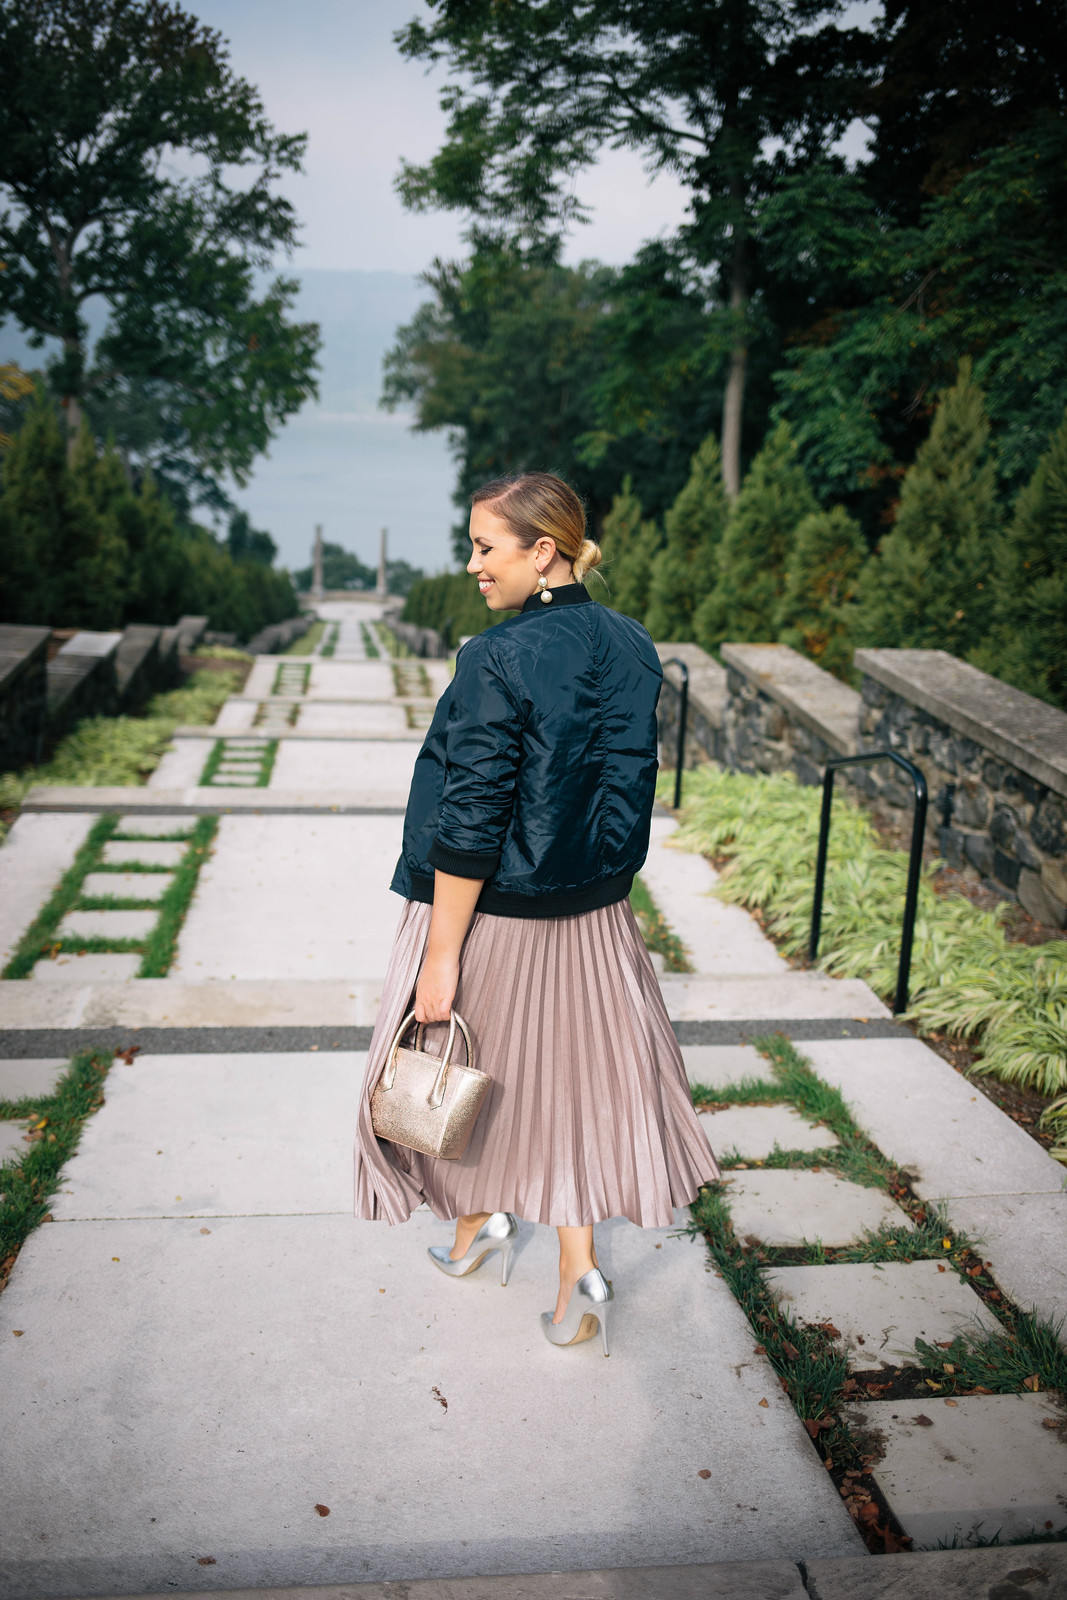 Navy Bomber Jacket Metallic Blush Pleated Midi Skirt Silver Heels Pearl Earrings Low Blonde Hair Bun Untermyer Park Yonkers NY